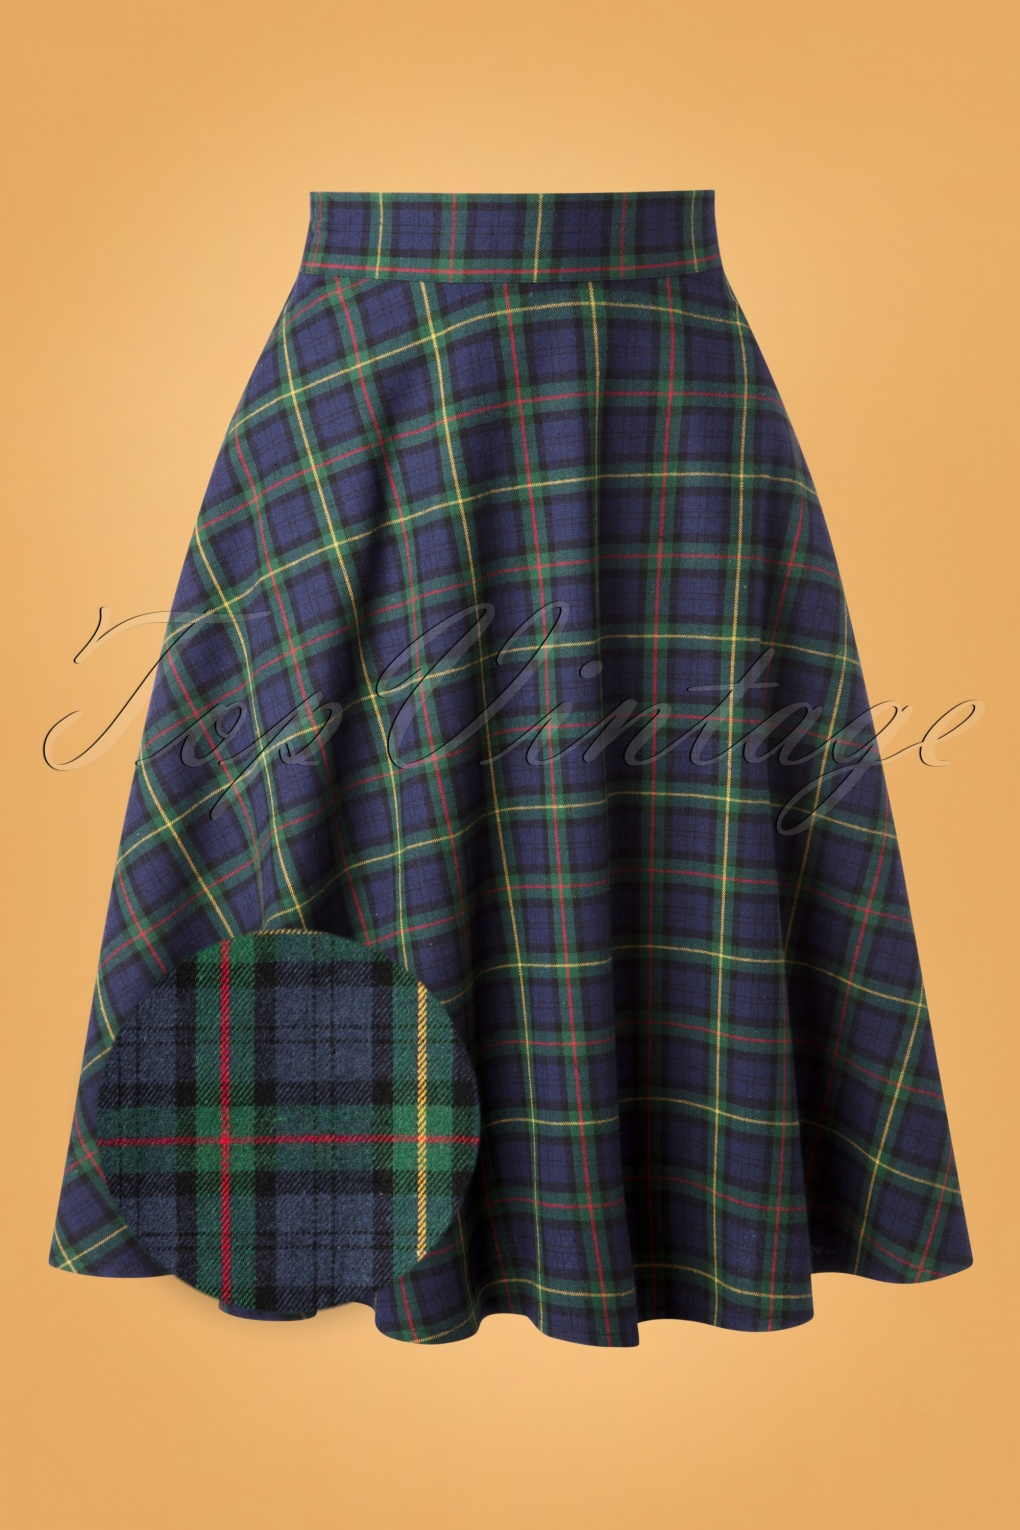 1940s Style Skirts- Vintage High Waisted Skirts 50s Happy Check Swing Skirt in Blue and Green £41.12 AT vintagedancer.com